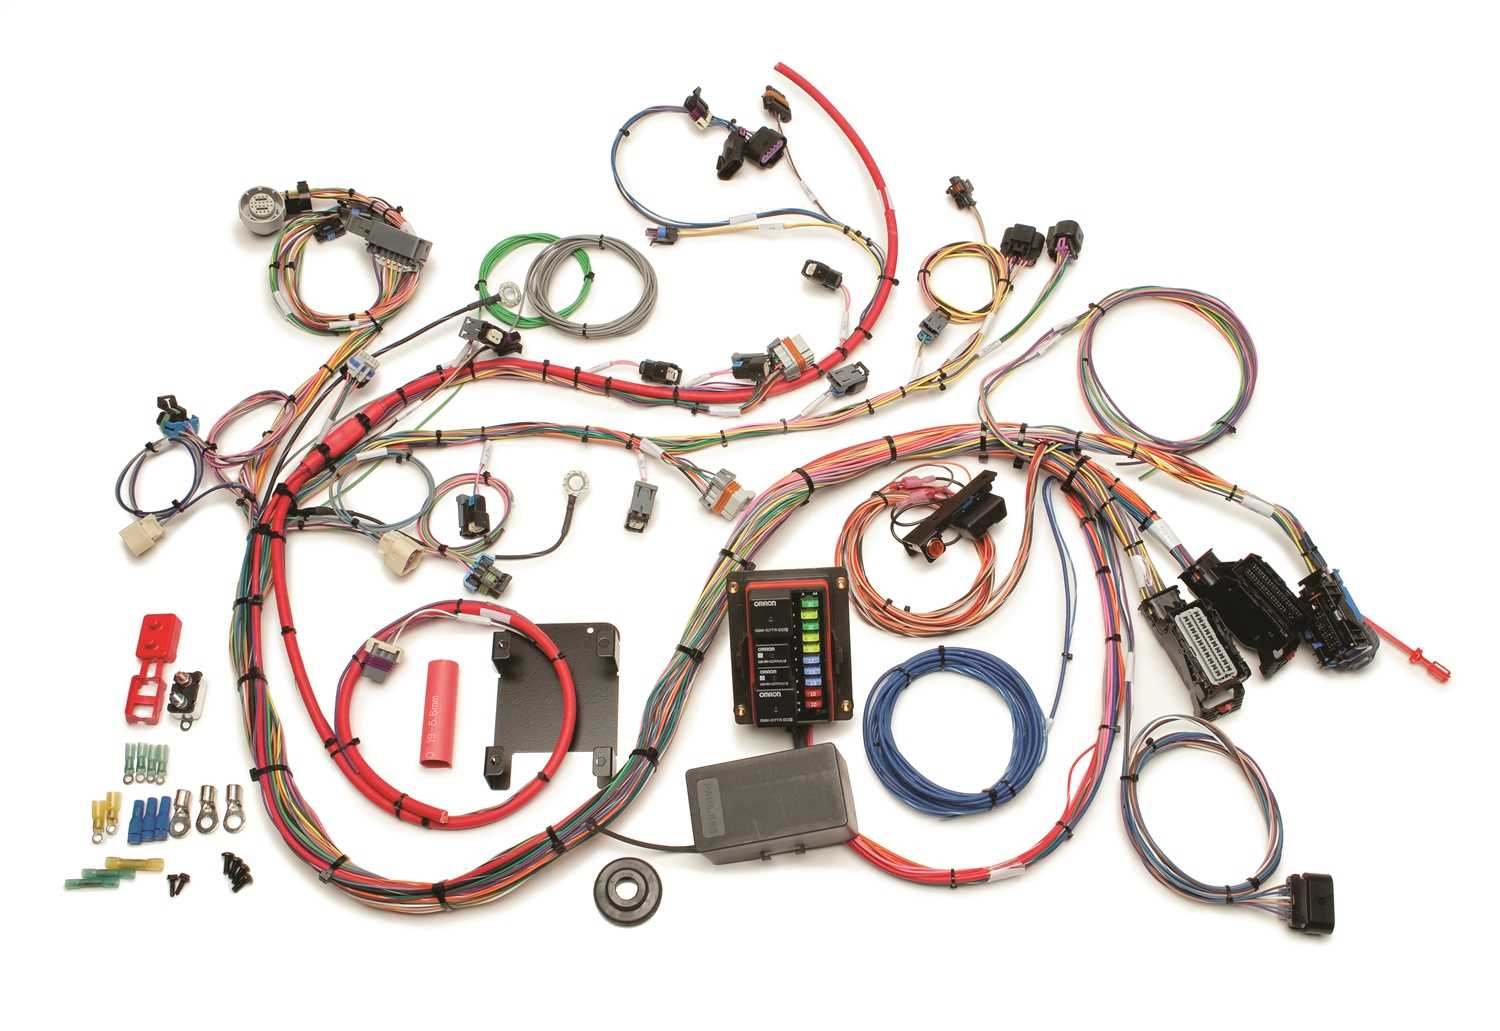 60526 Painless Wiring Engine Wiring Harness 60526 on painless switch panel, painless fuse box, painless lt1 harness,